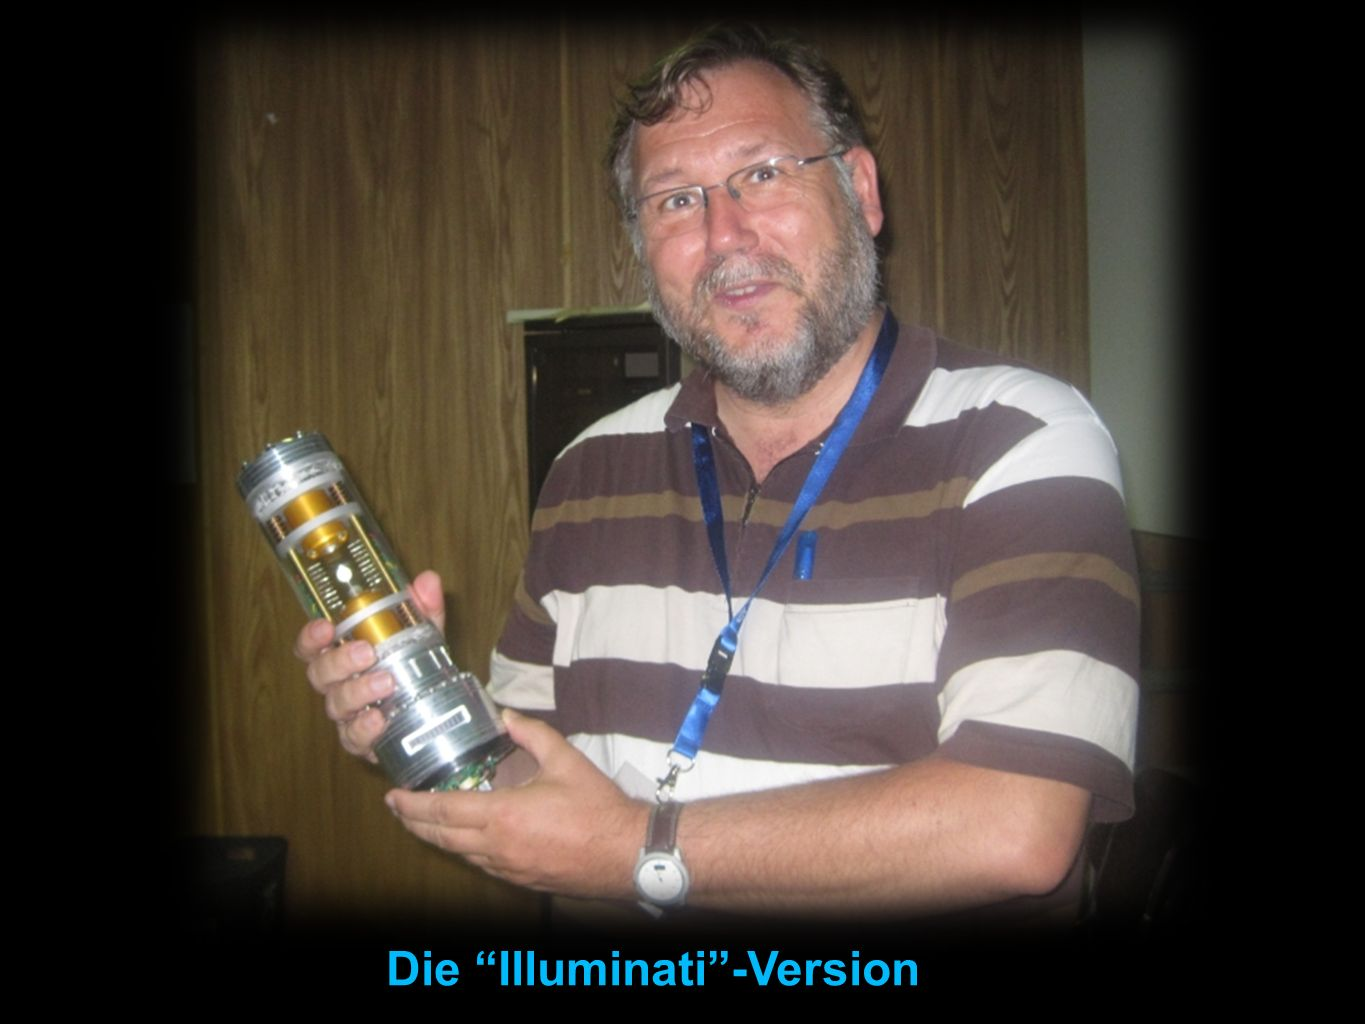 Die Illuminati -Version